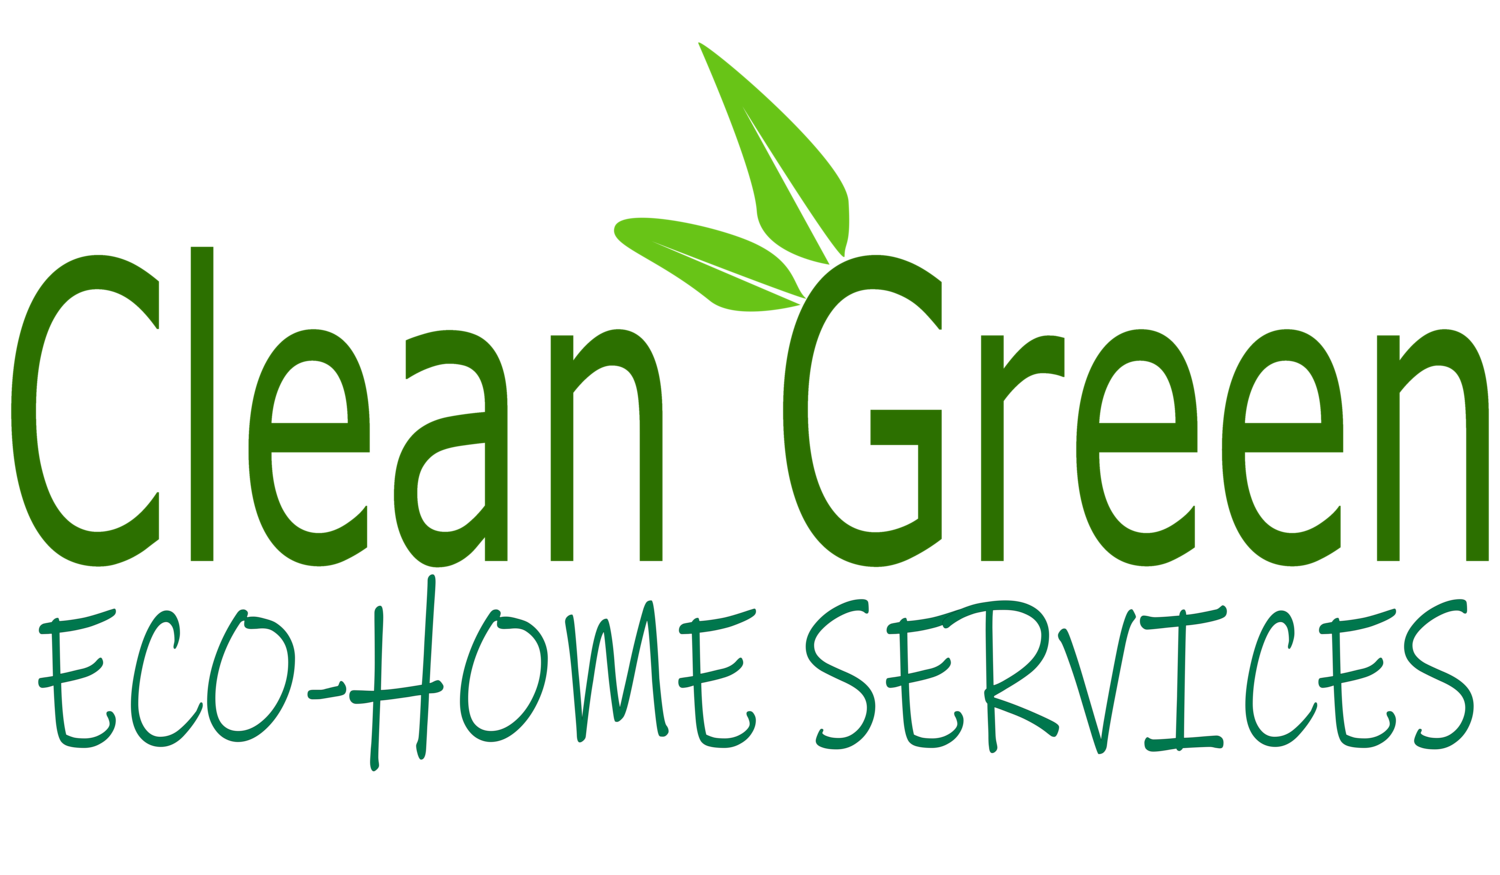 Clean Green Eco Home Service